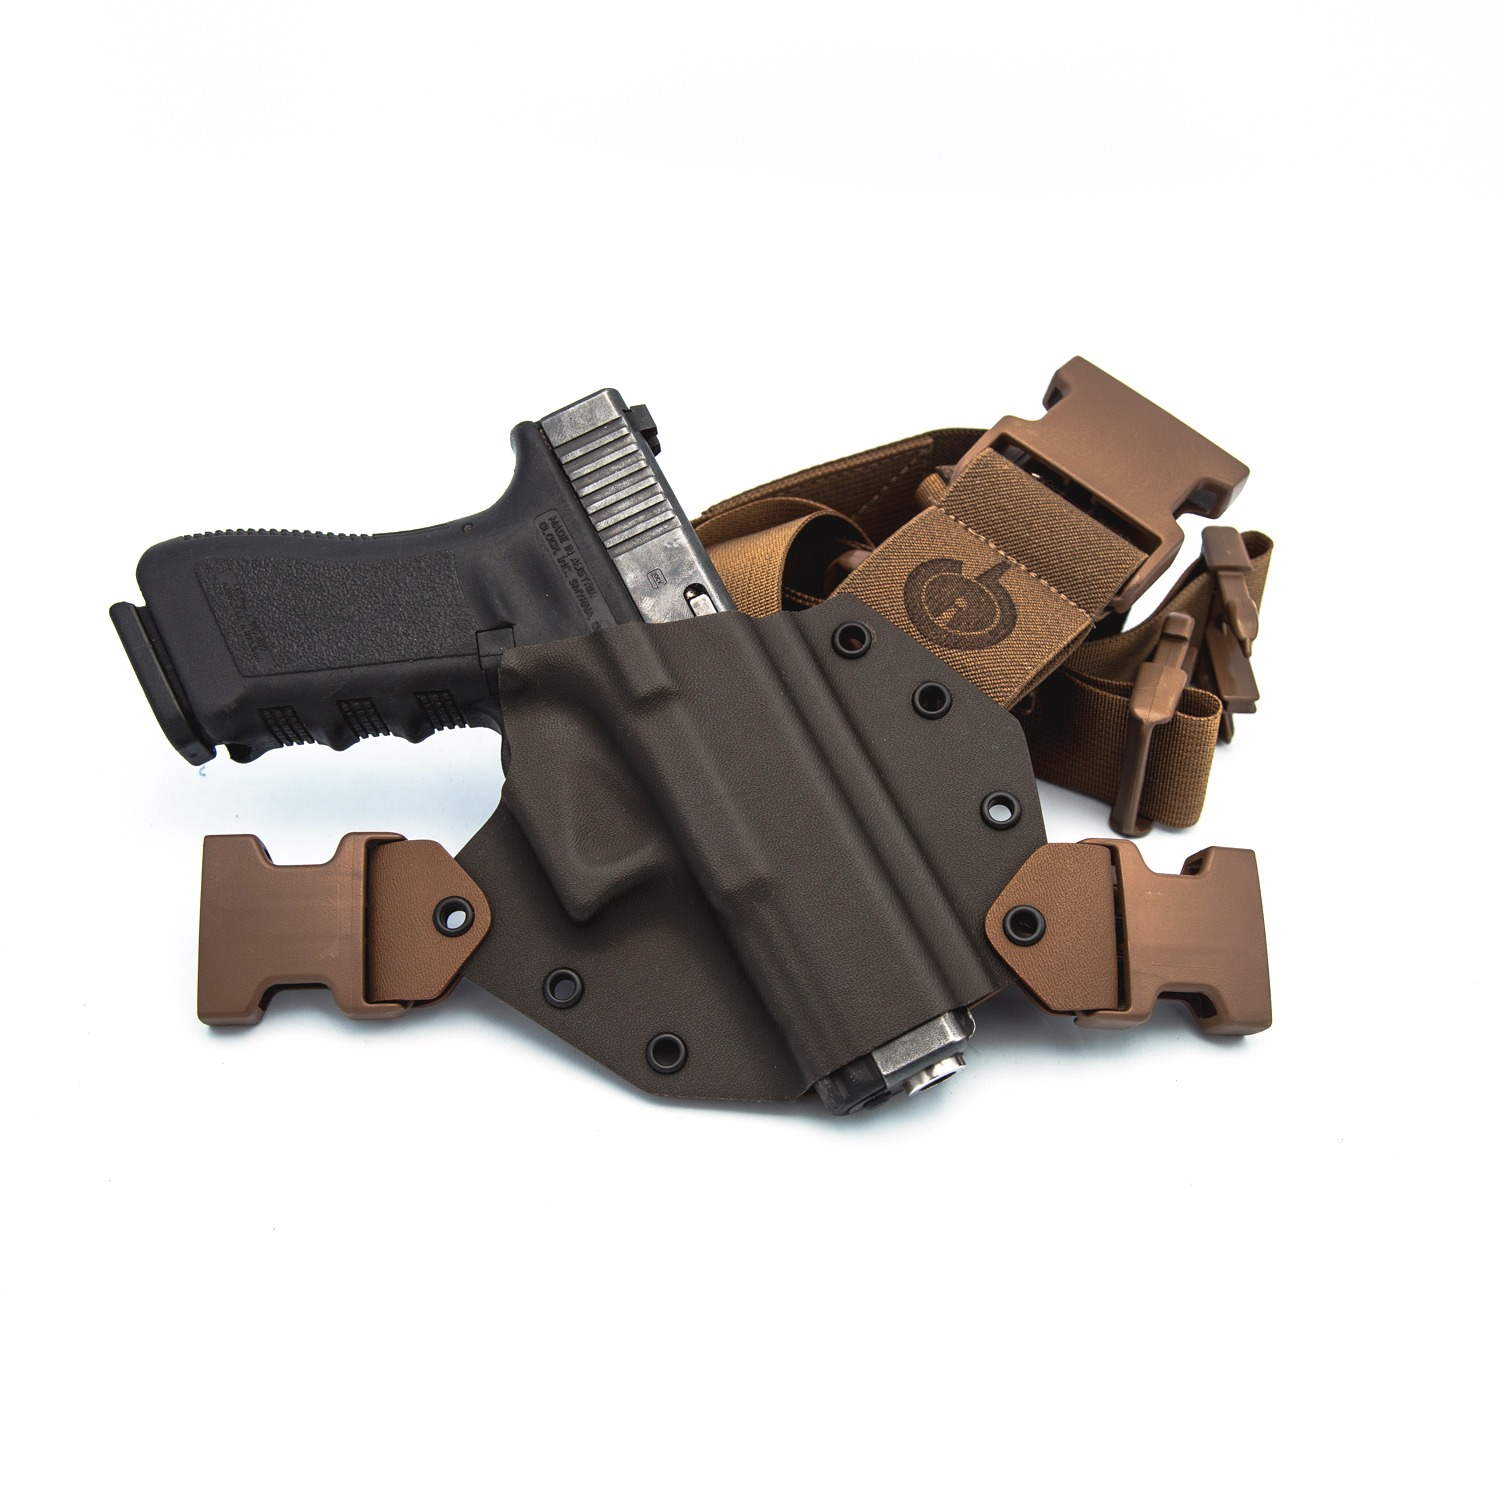 Ready To Ship: Kenai Chest Holster for Glock 19/23, 17/22 or 34/35